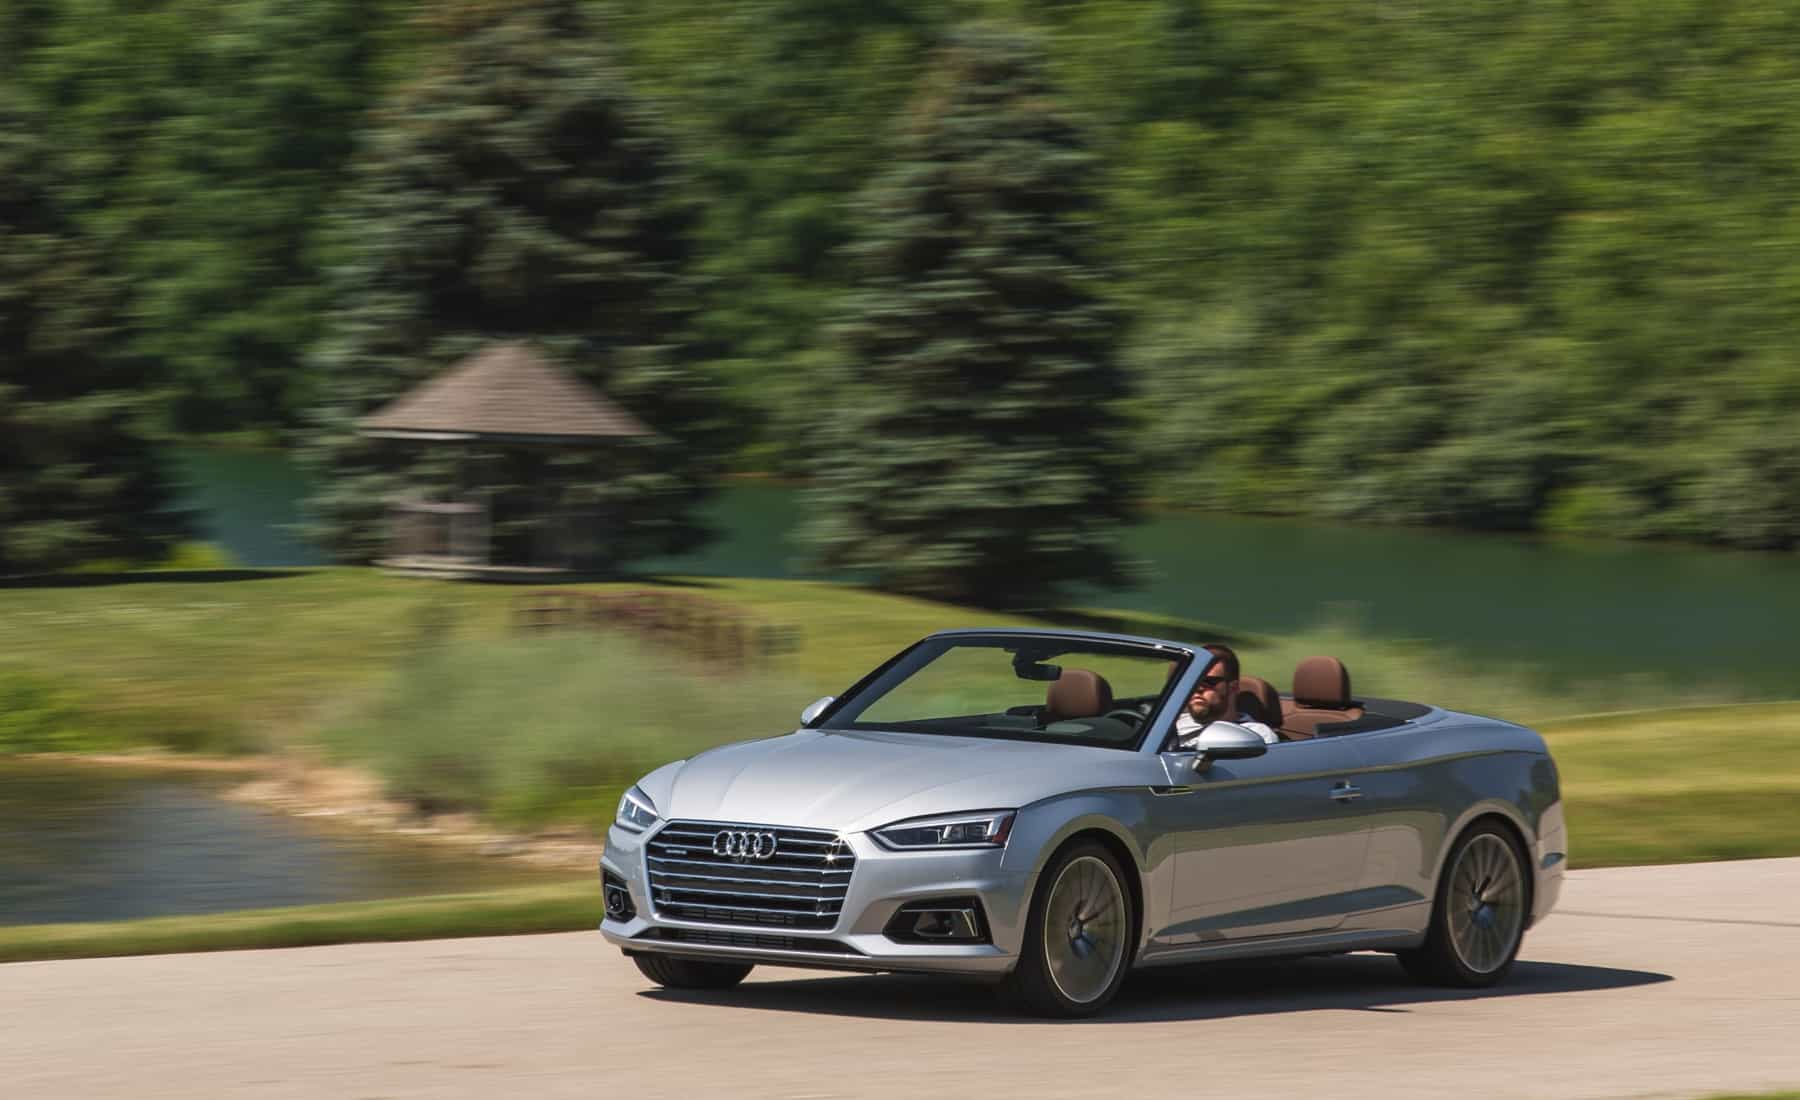 2018 Audi A5 Cabriolet Test Drive Roof Open Front And Side View (Photo 4 of 45)